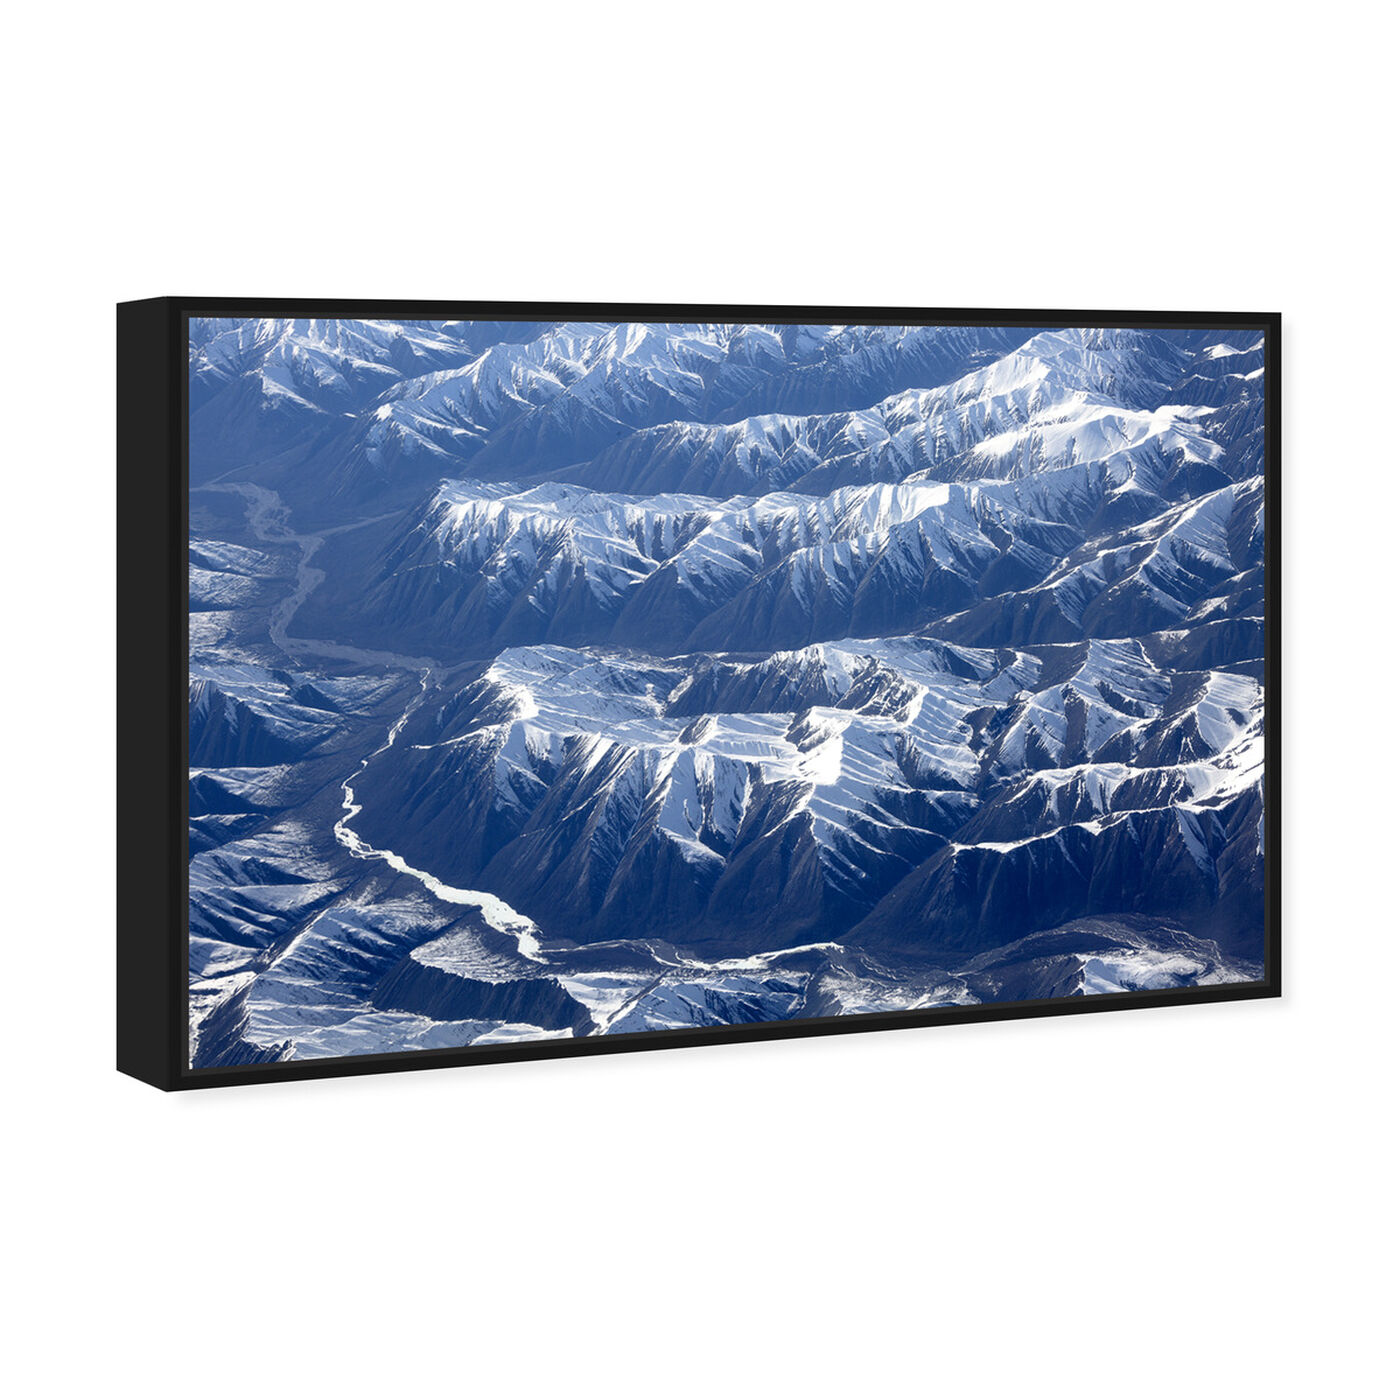 Angled view of Curro Cardenal - Aero View IV featuring nature and landscape and mountains art.